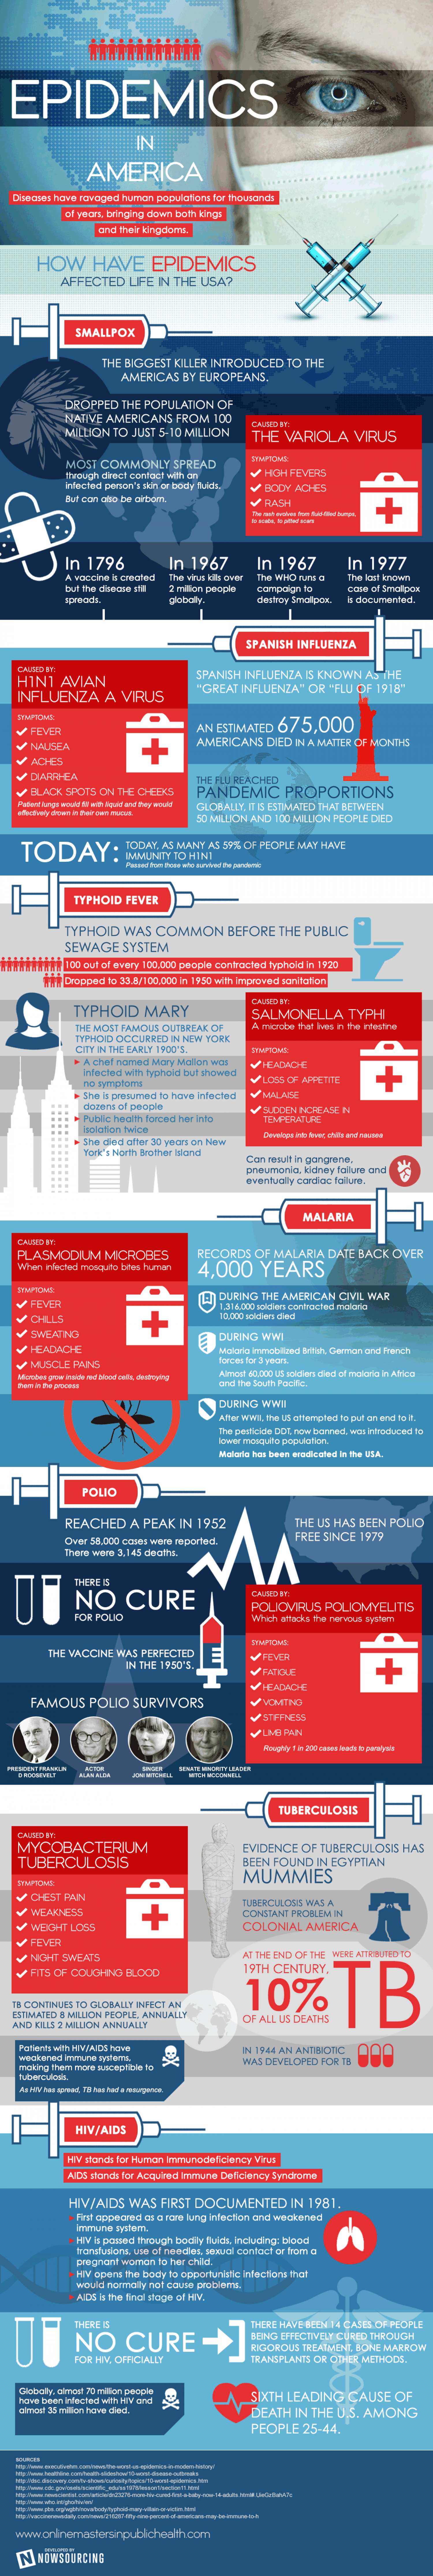 Epidemics in America Infographic